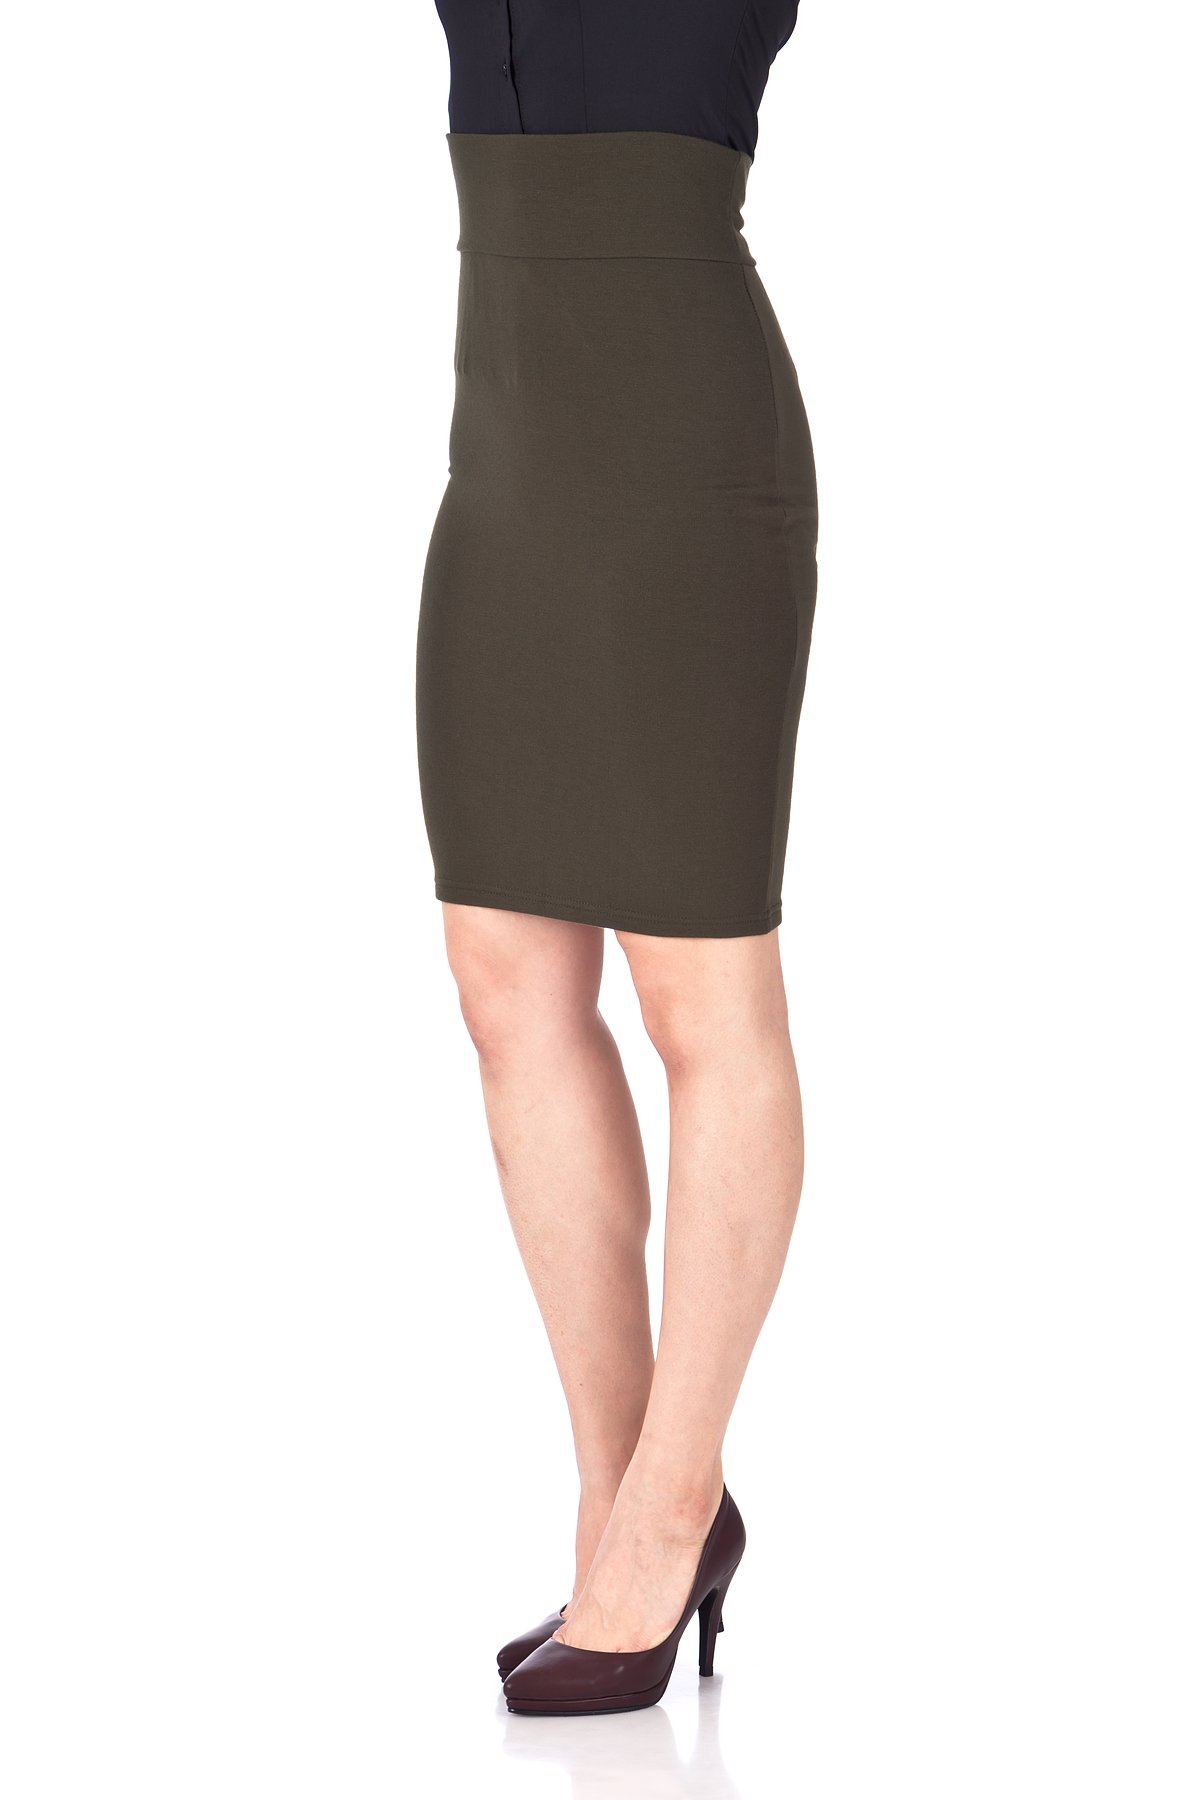 Every Occasion Stretch Pull on Wide High Waist Bodycon Pencil Knee Length Midi Skirt Khaki 06